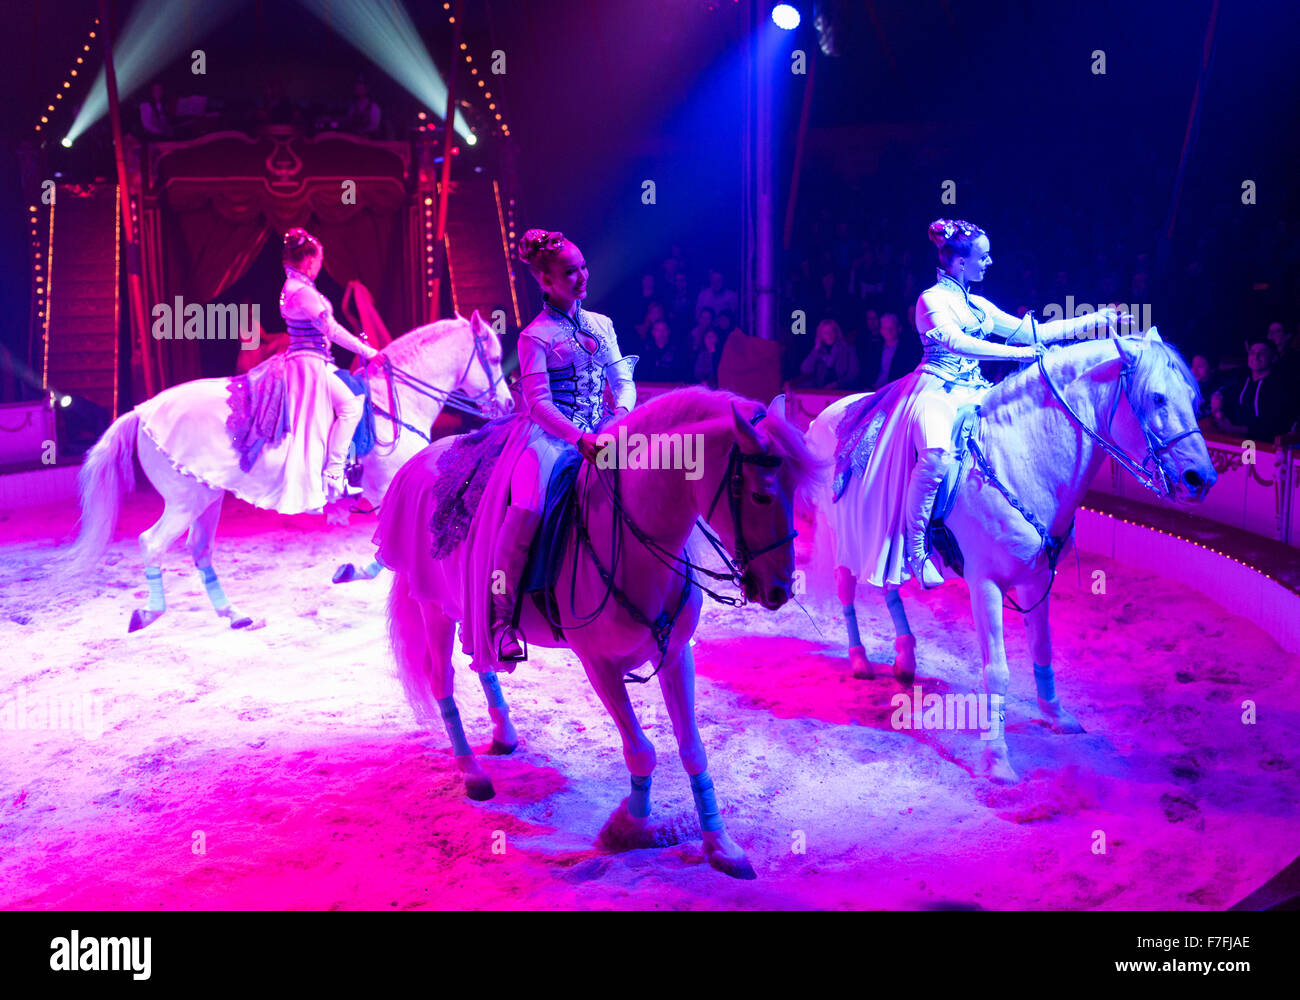 Artists of the Roncalli Circus (the Saabel Family with their horses) perform their show 'Salto Vitale'. - Stock Image